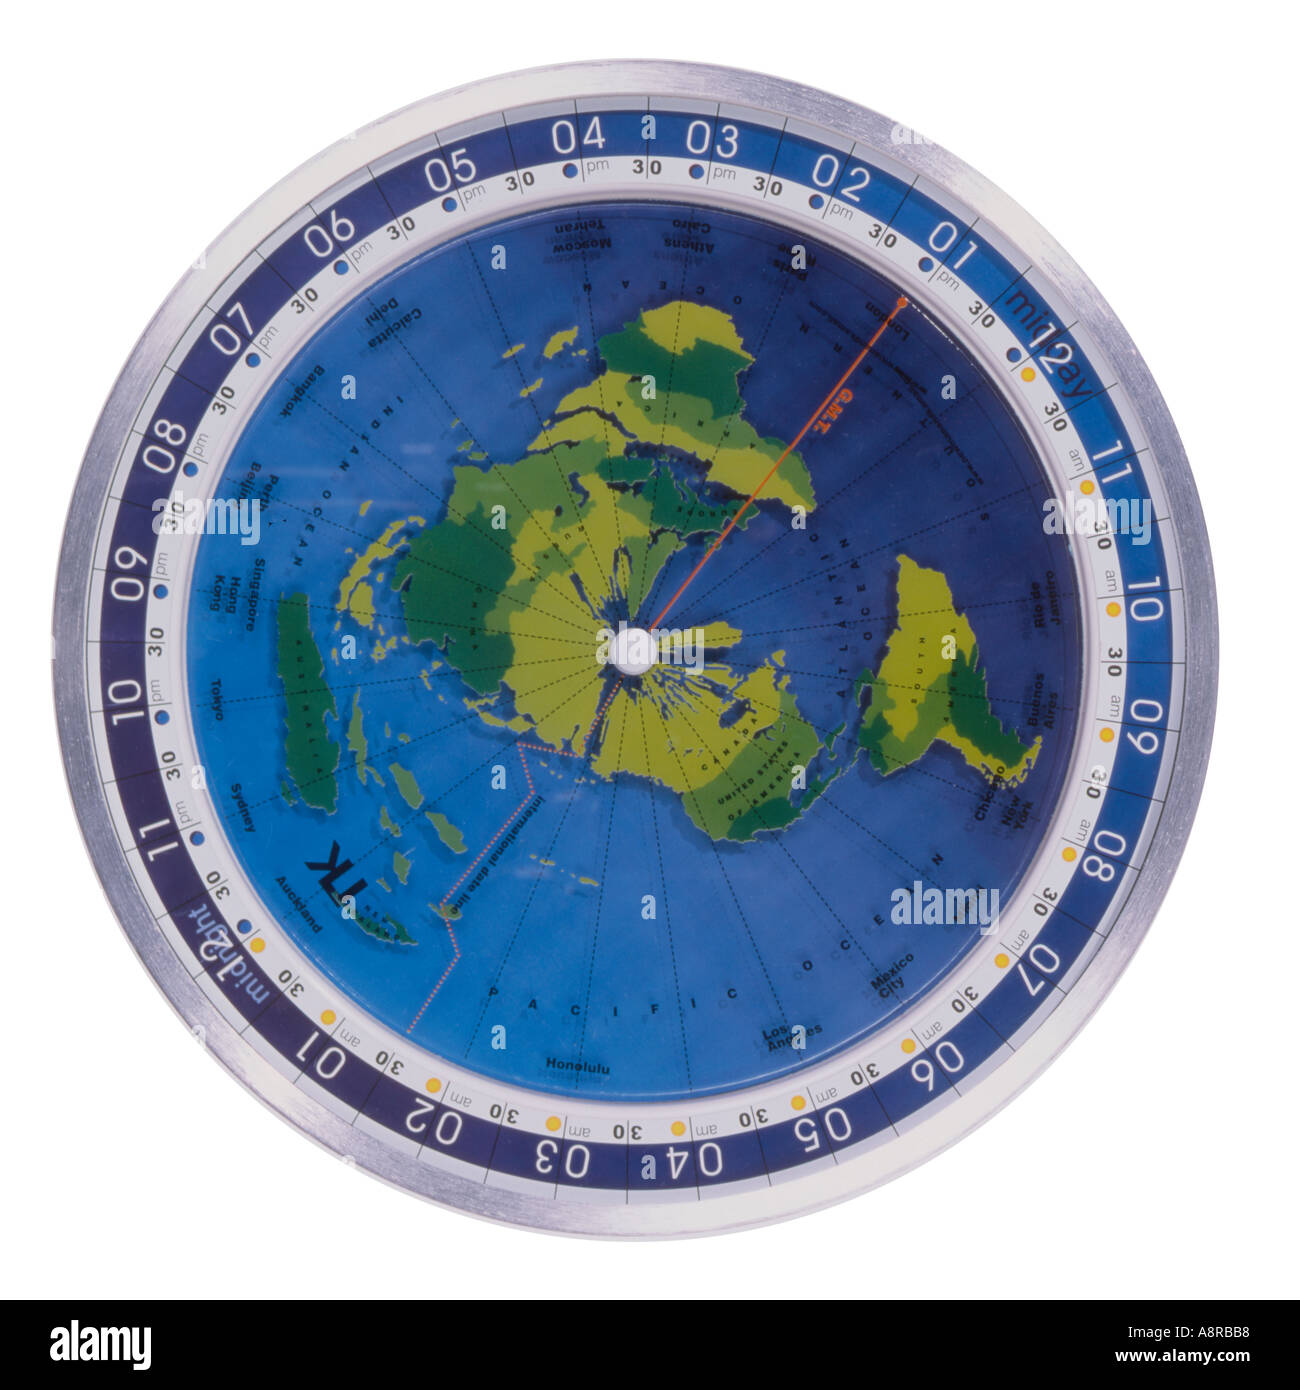 World clock globe map from above stock photo 2259895 alamy world clock globe map from above gumiabroncs Images